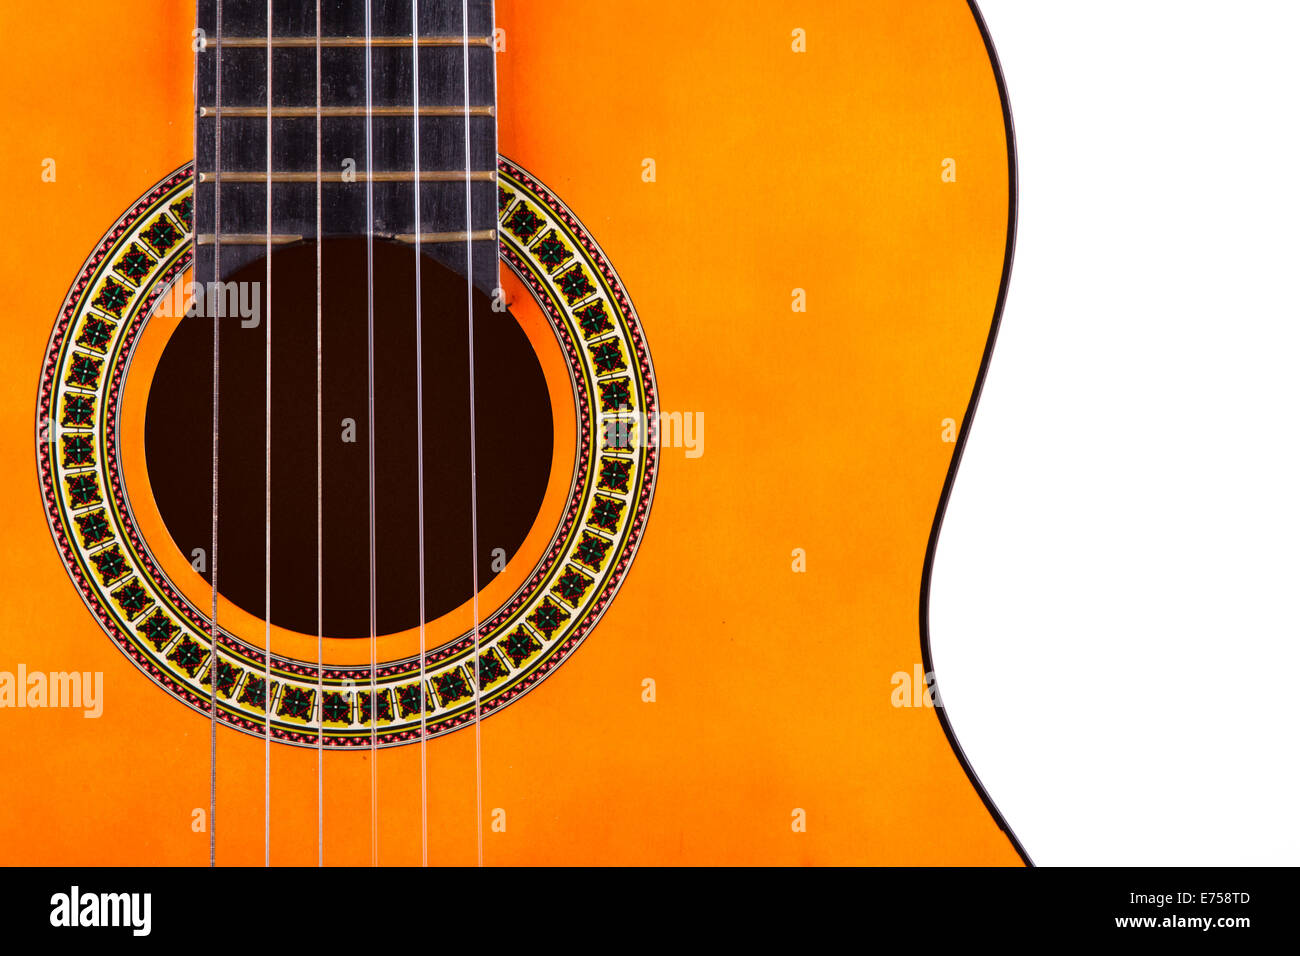 Front view of wooden classical acoustic guitar, isolated on white background. Stock Photo